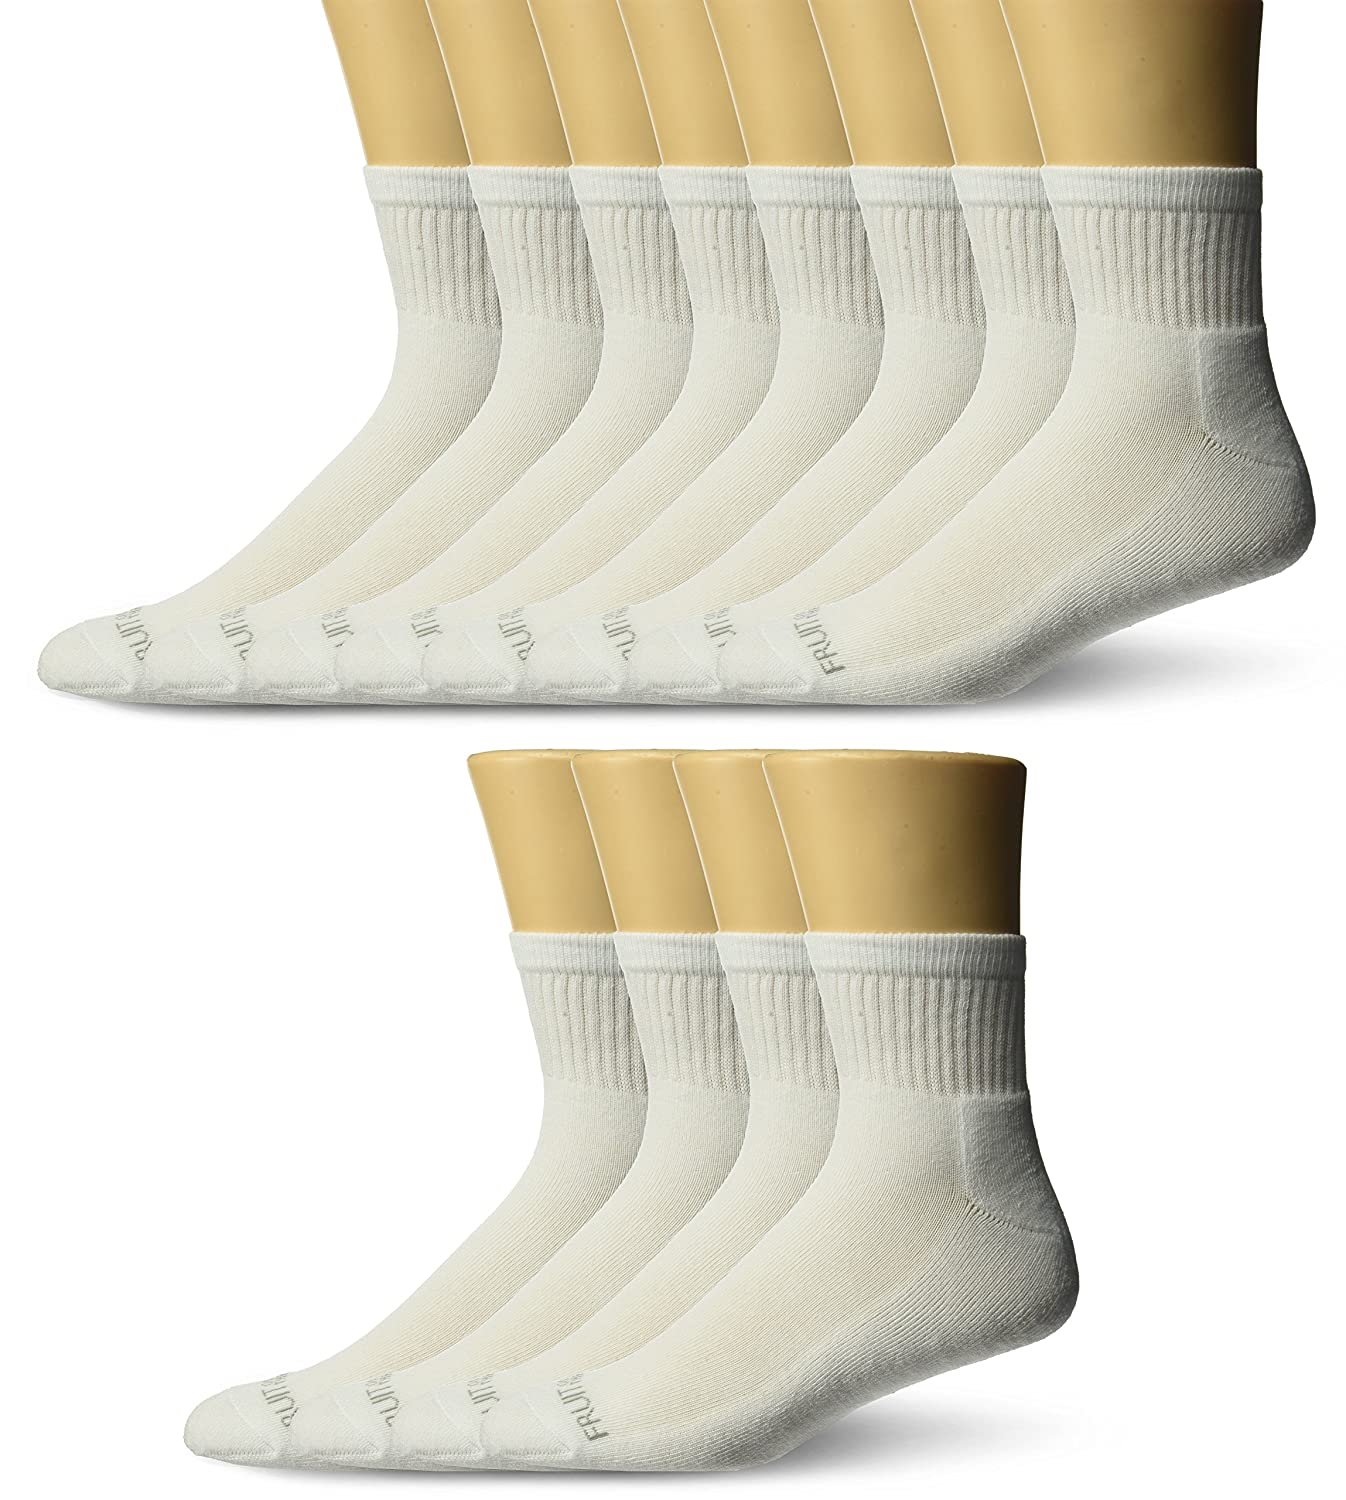 Fruit of the Loom Men's 12 Pair Big and Tall Half Cushion Ankle Sock, -white Shoe size 12-16 K4510W12